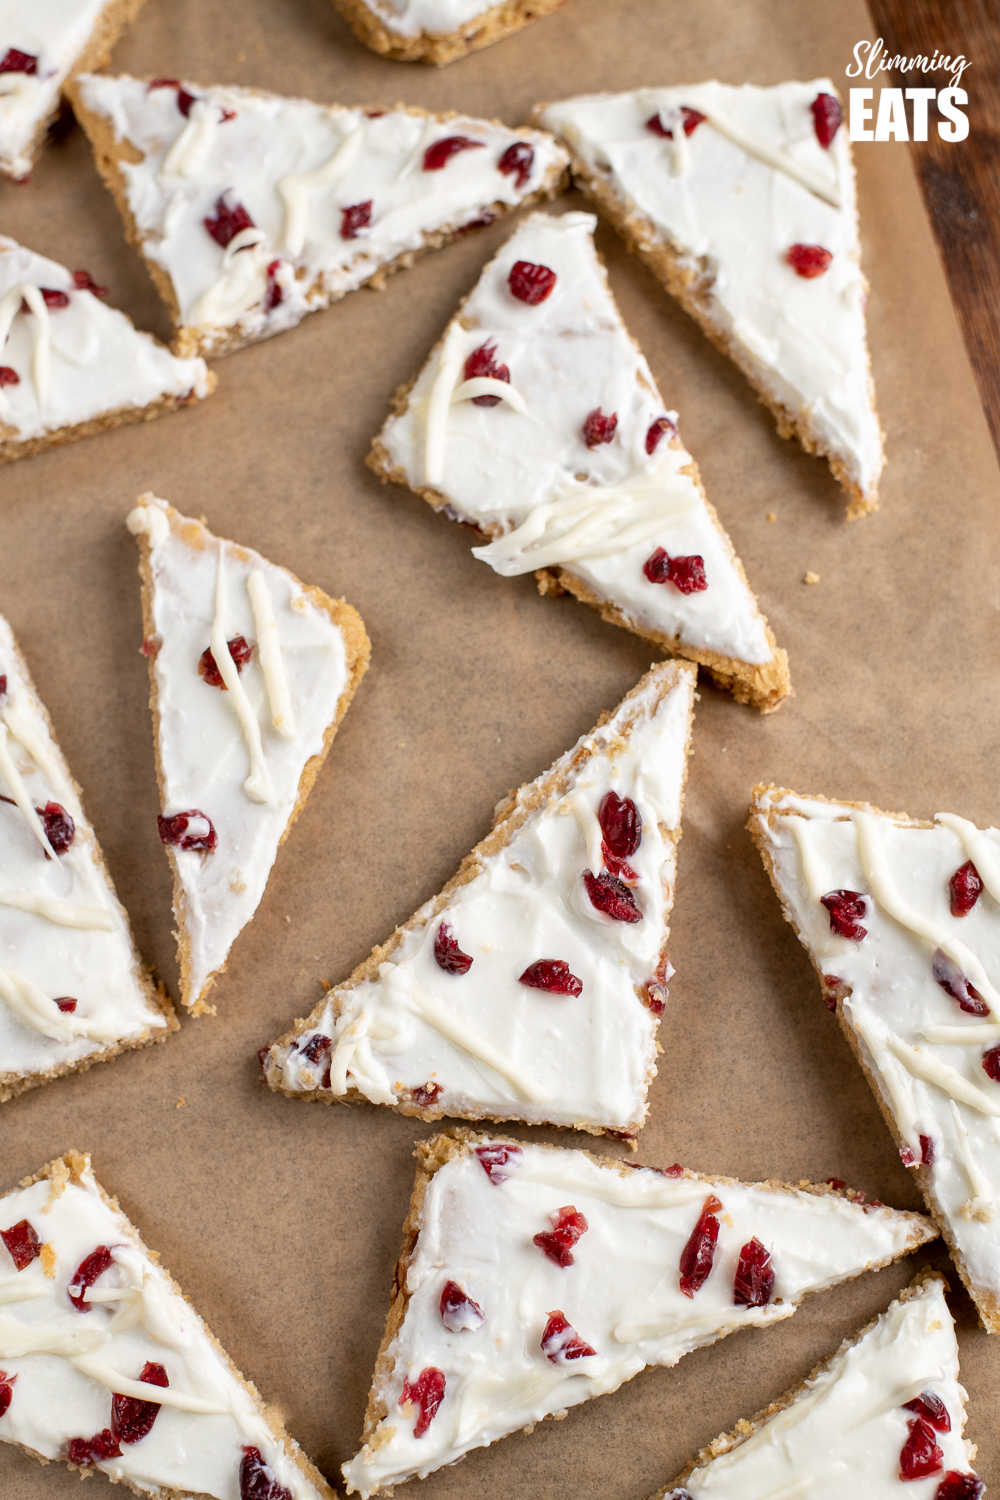 over the top view of cranberry bliss baked oat bars on parchment paper